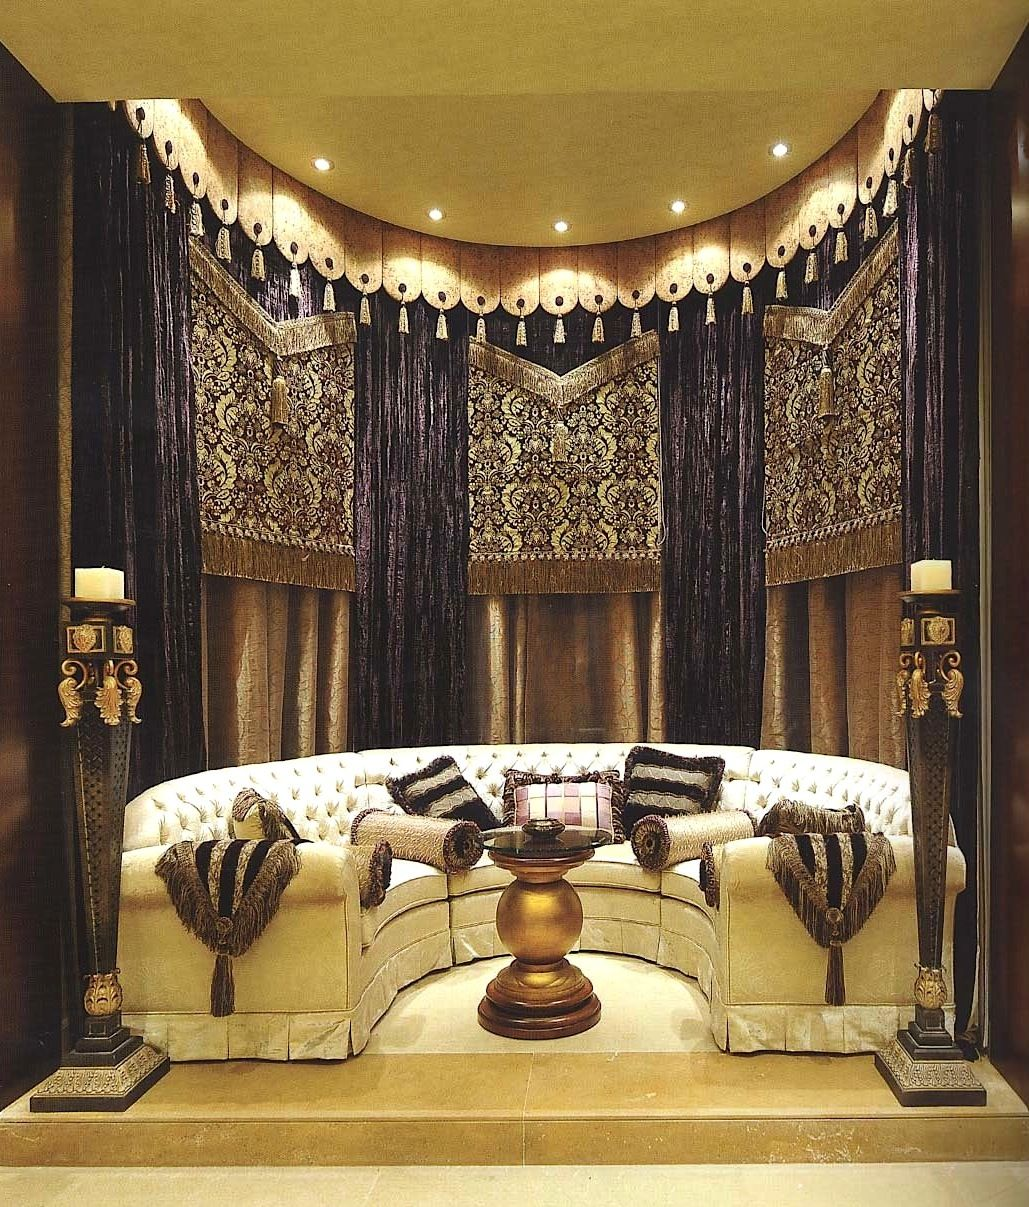 Curtains from the Middle East. http://www.pinterest.com/elhamzaid ...